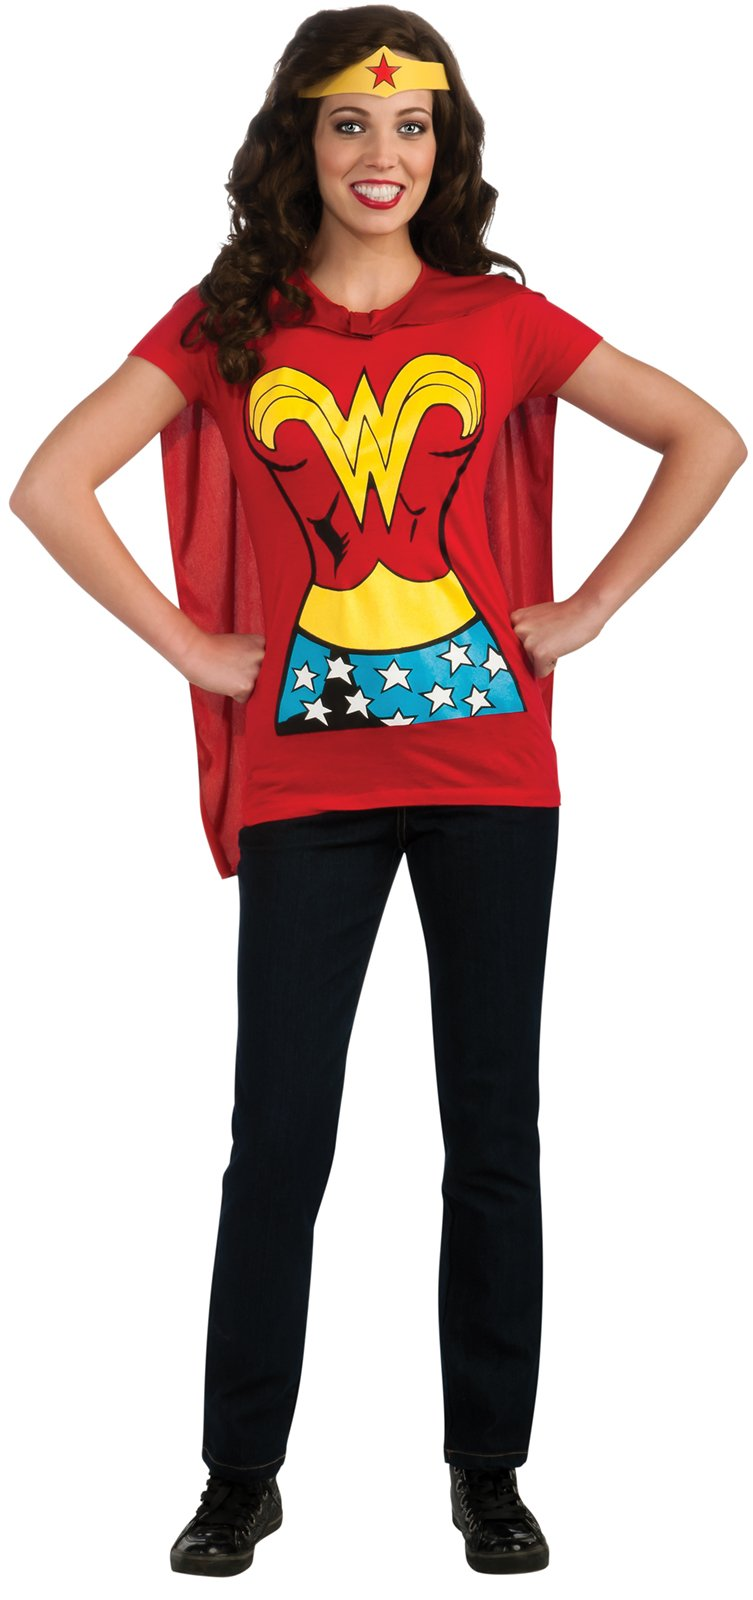 DC Comics Wonder Woman T-Shirt With Cape And Headband, Red, X-Large Costume